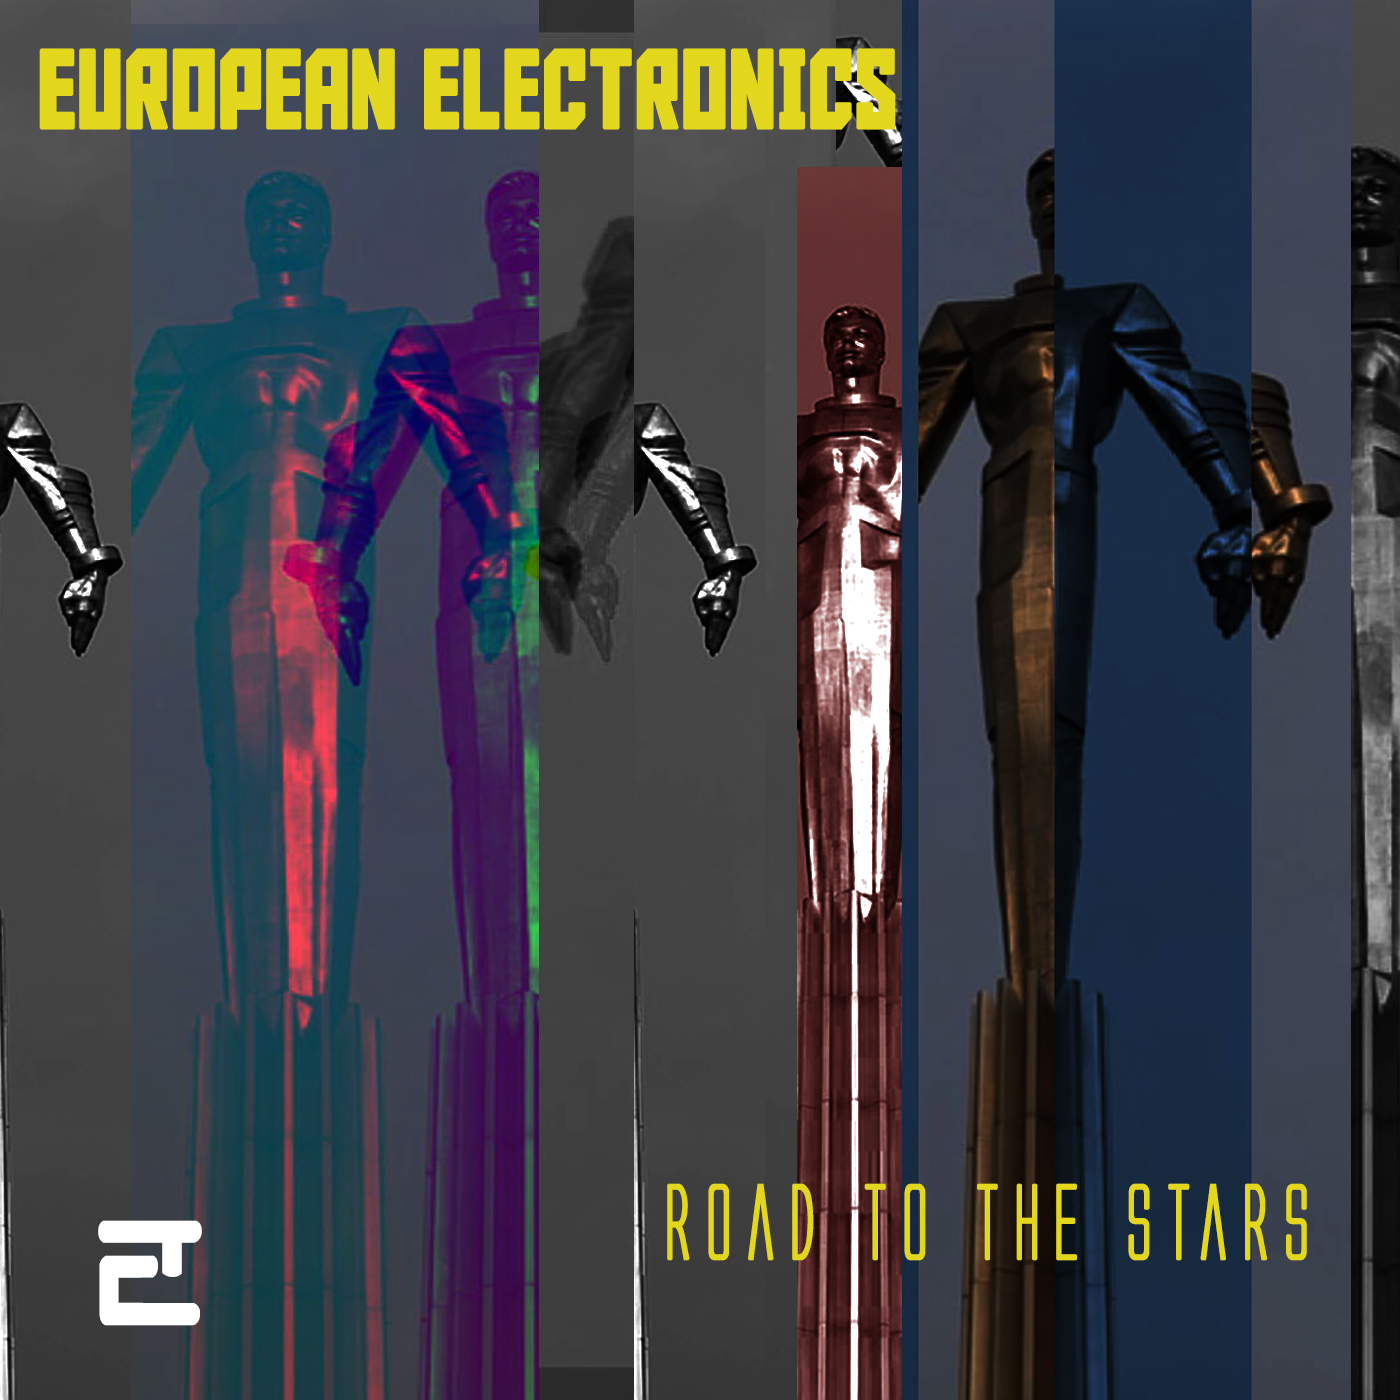 E94 European Electronics: Road to the Stars